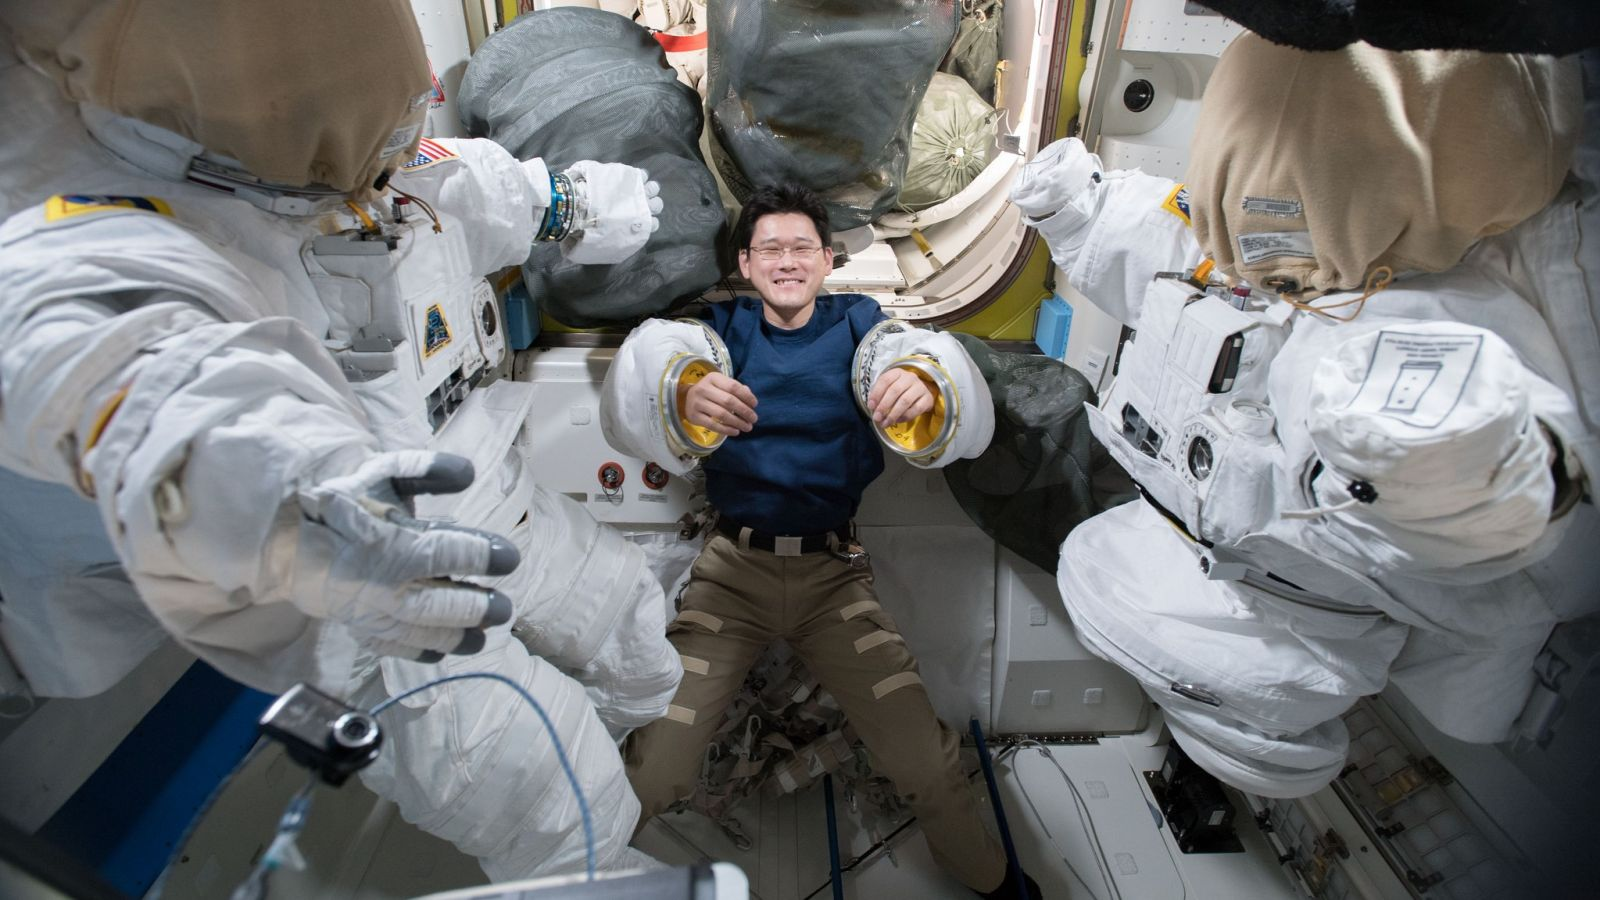 Japan Aerospace Exploration Agency astronaut Norishige Kanai tries on spacesuit sleeves inside the Quest airlock in preparation for the eventual U.S. EVA-48. Photo Credit: NASA